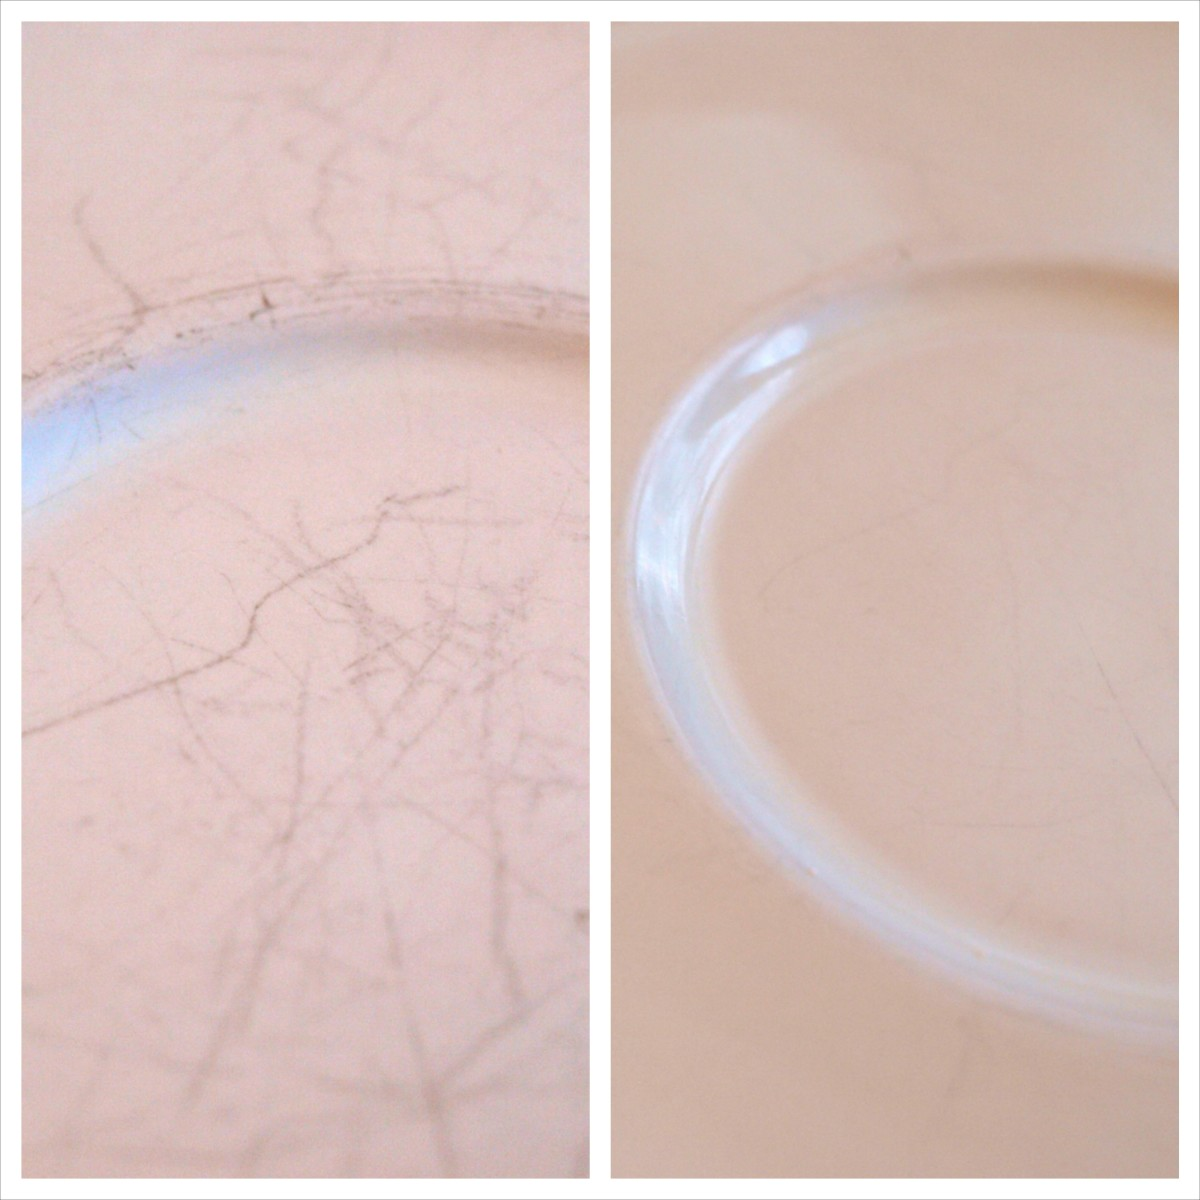 Before and after using whitening toothpaste to remove scuff marks from dishes.